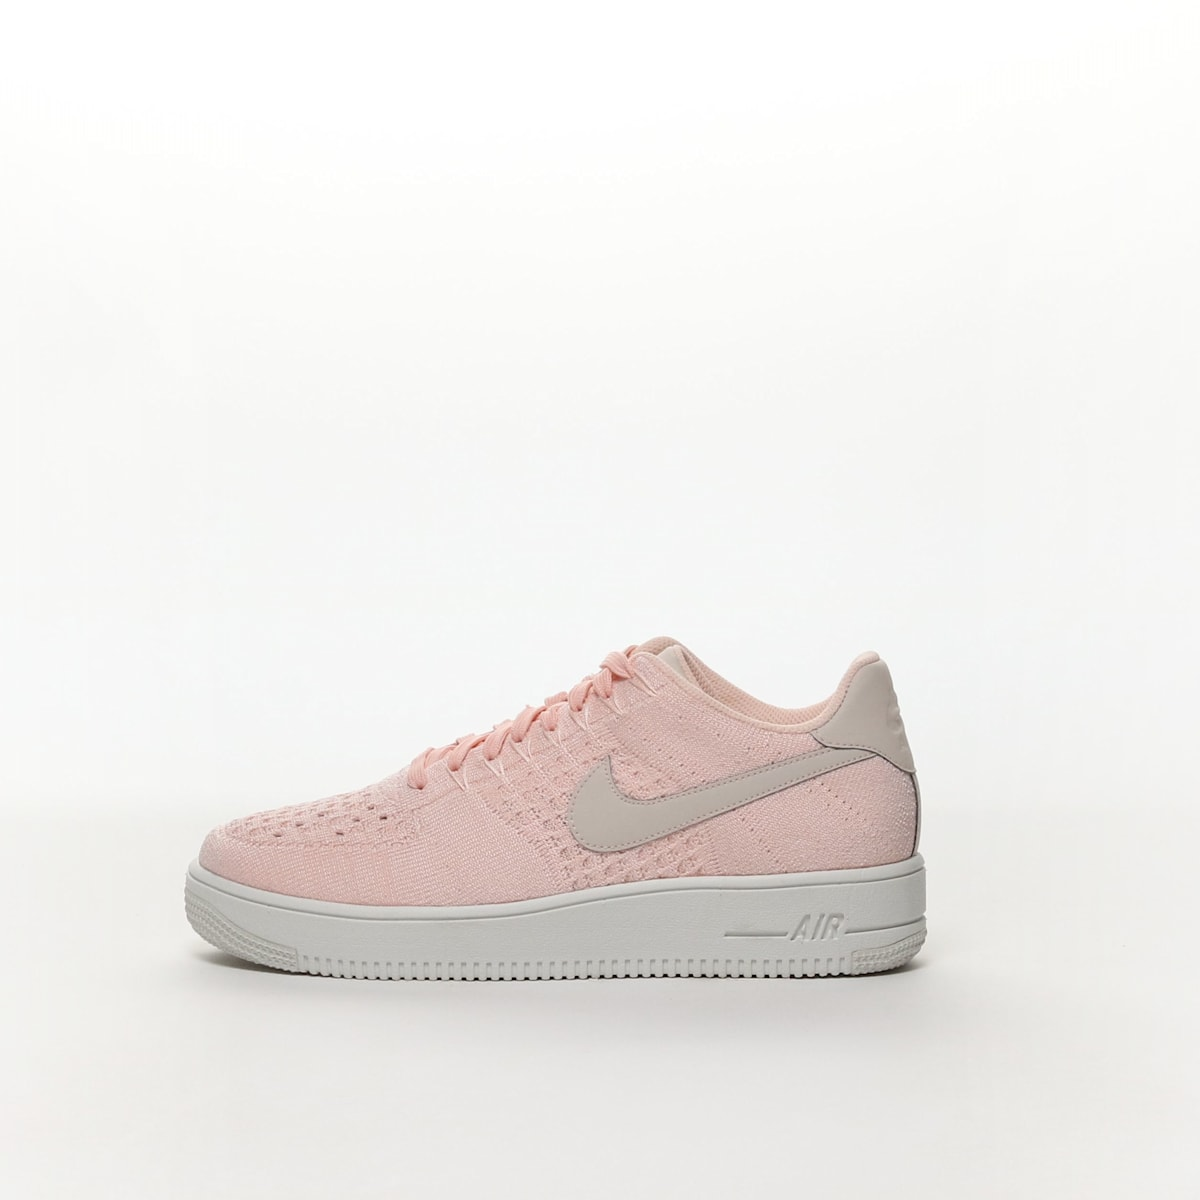 0e64d4682c15 Nike Air Force 1 Flyknit Low Men s Shoe - SUNSET TINT SUNSET TINT ...